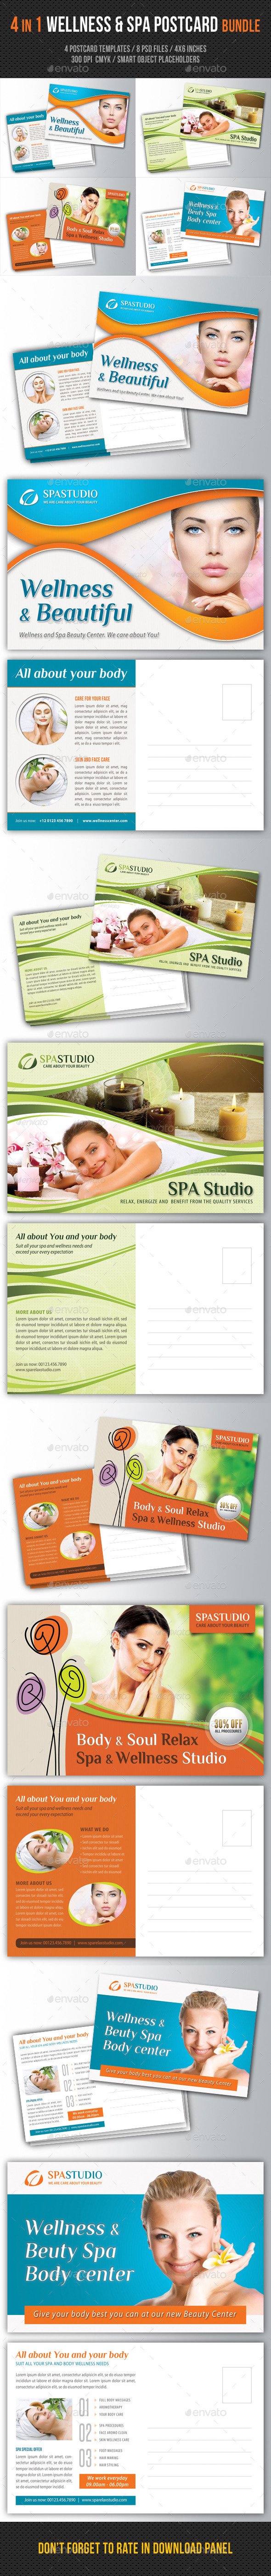 GraphicRiver 4 in 1 Wellness and Spa Postcard Bundle 10798644